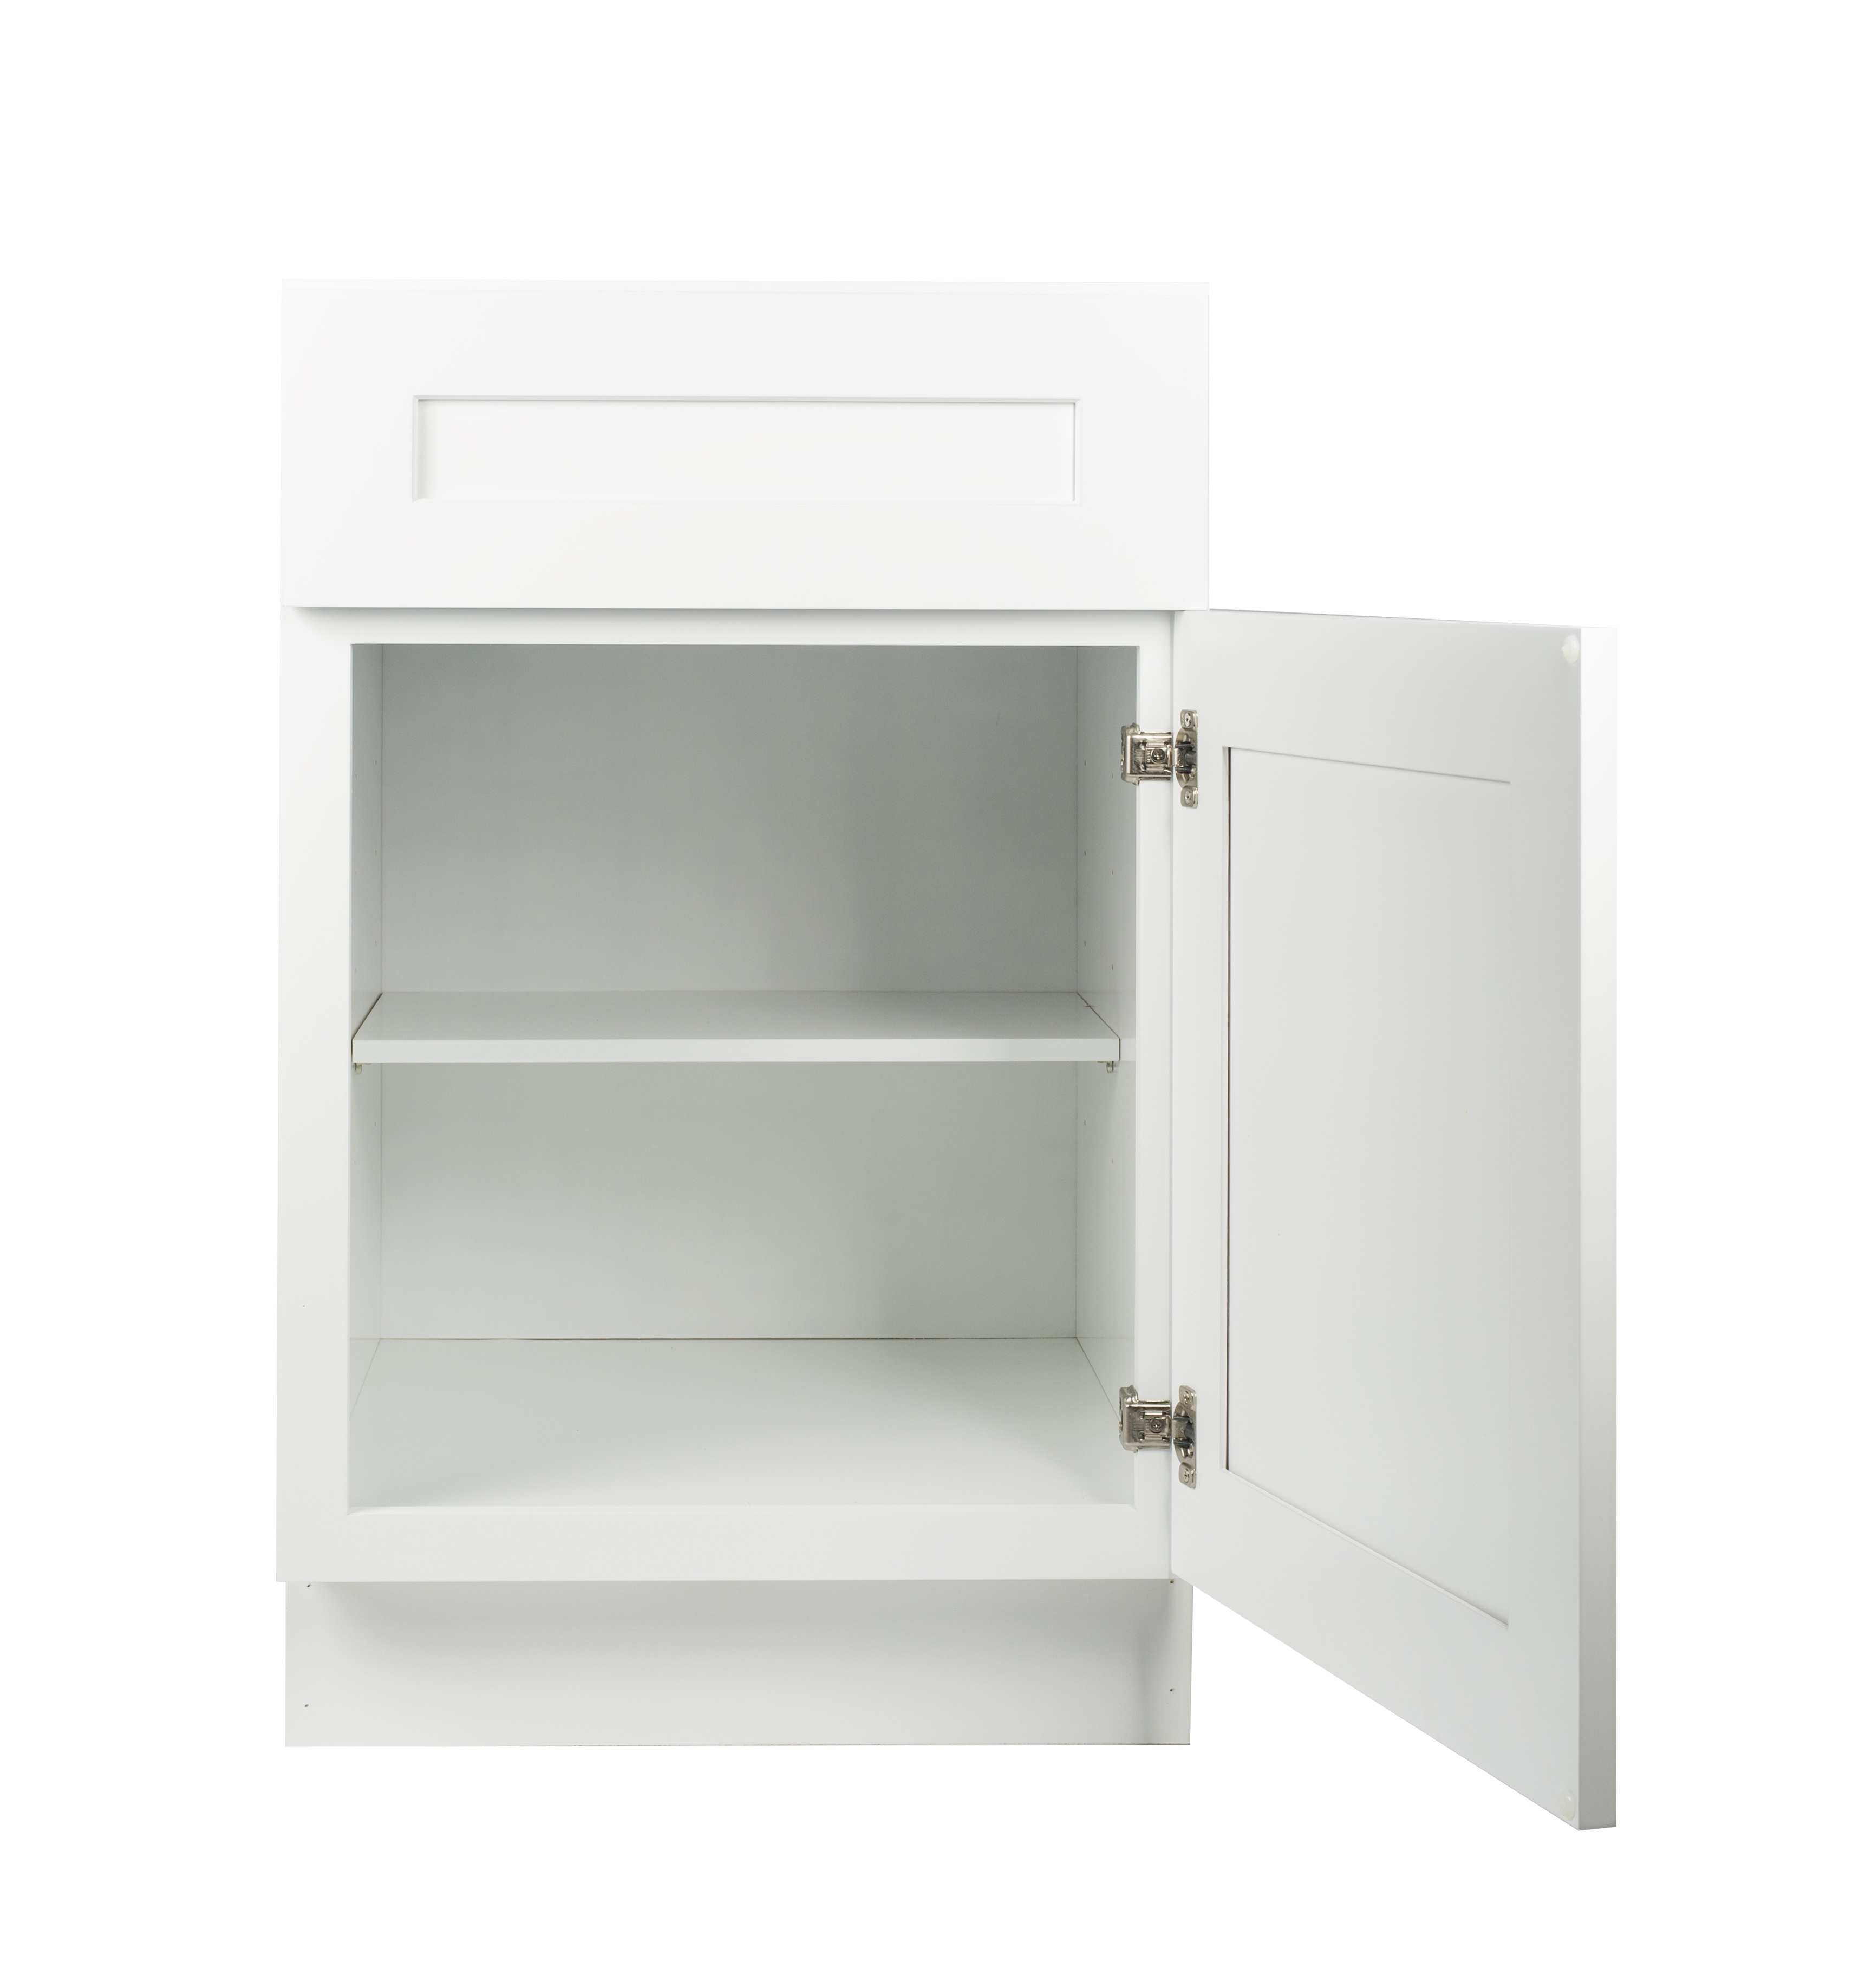 Ready to Assemble 15Wx34.5Hx24D in. Shaker Base Cabinet with 1 Door and 1 Drawer in White